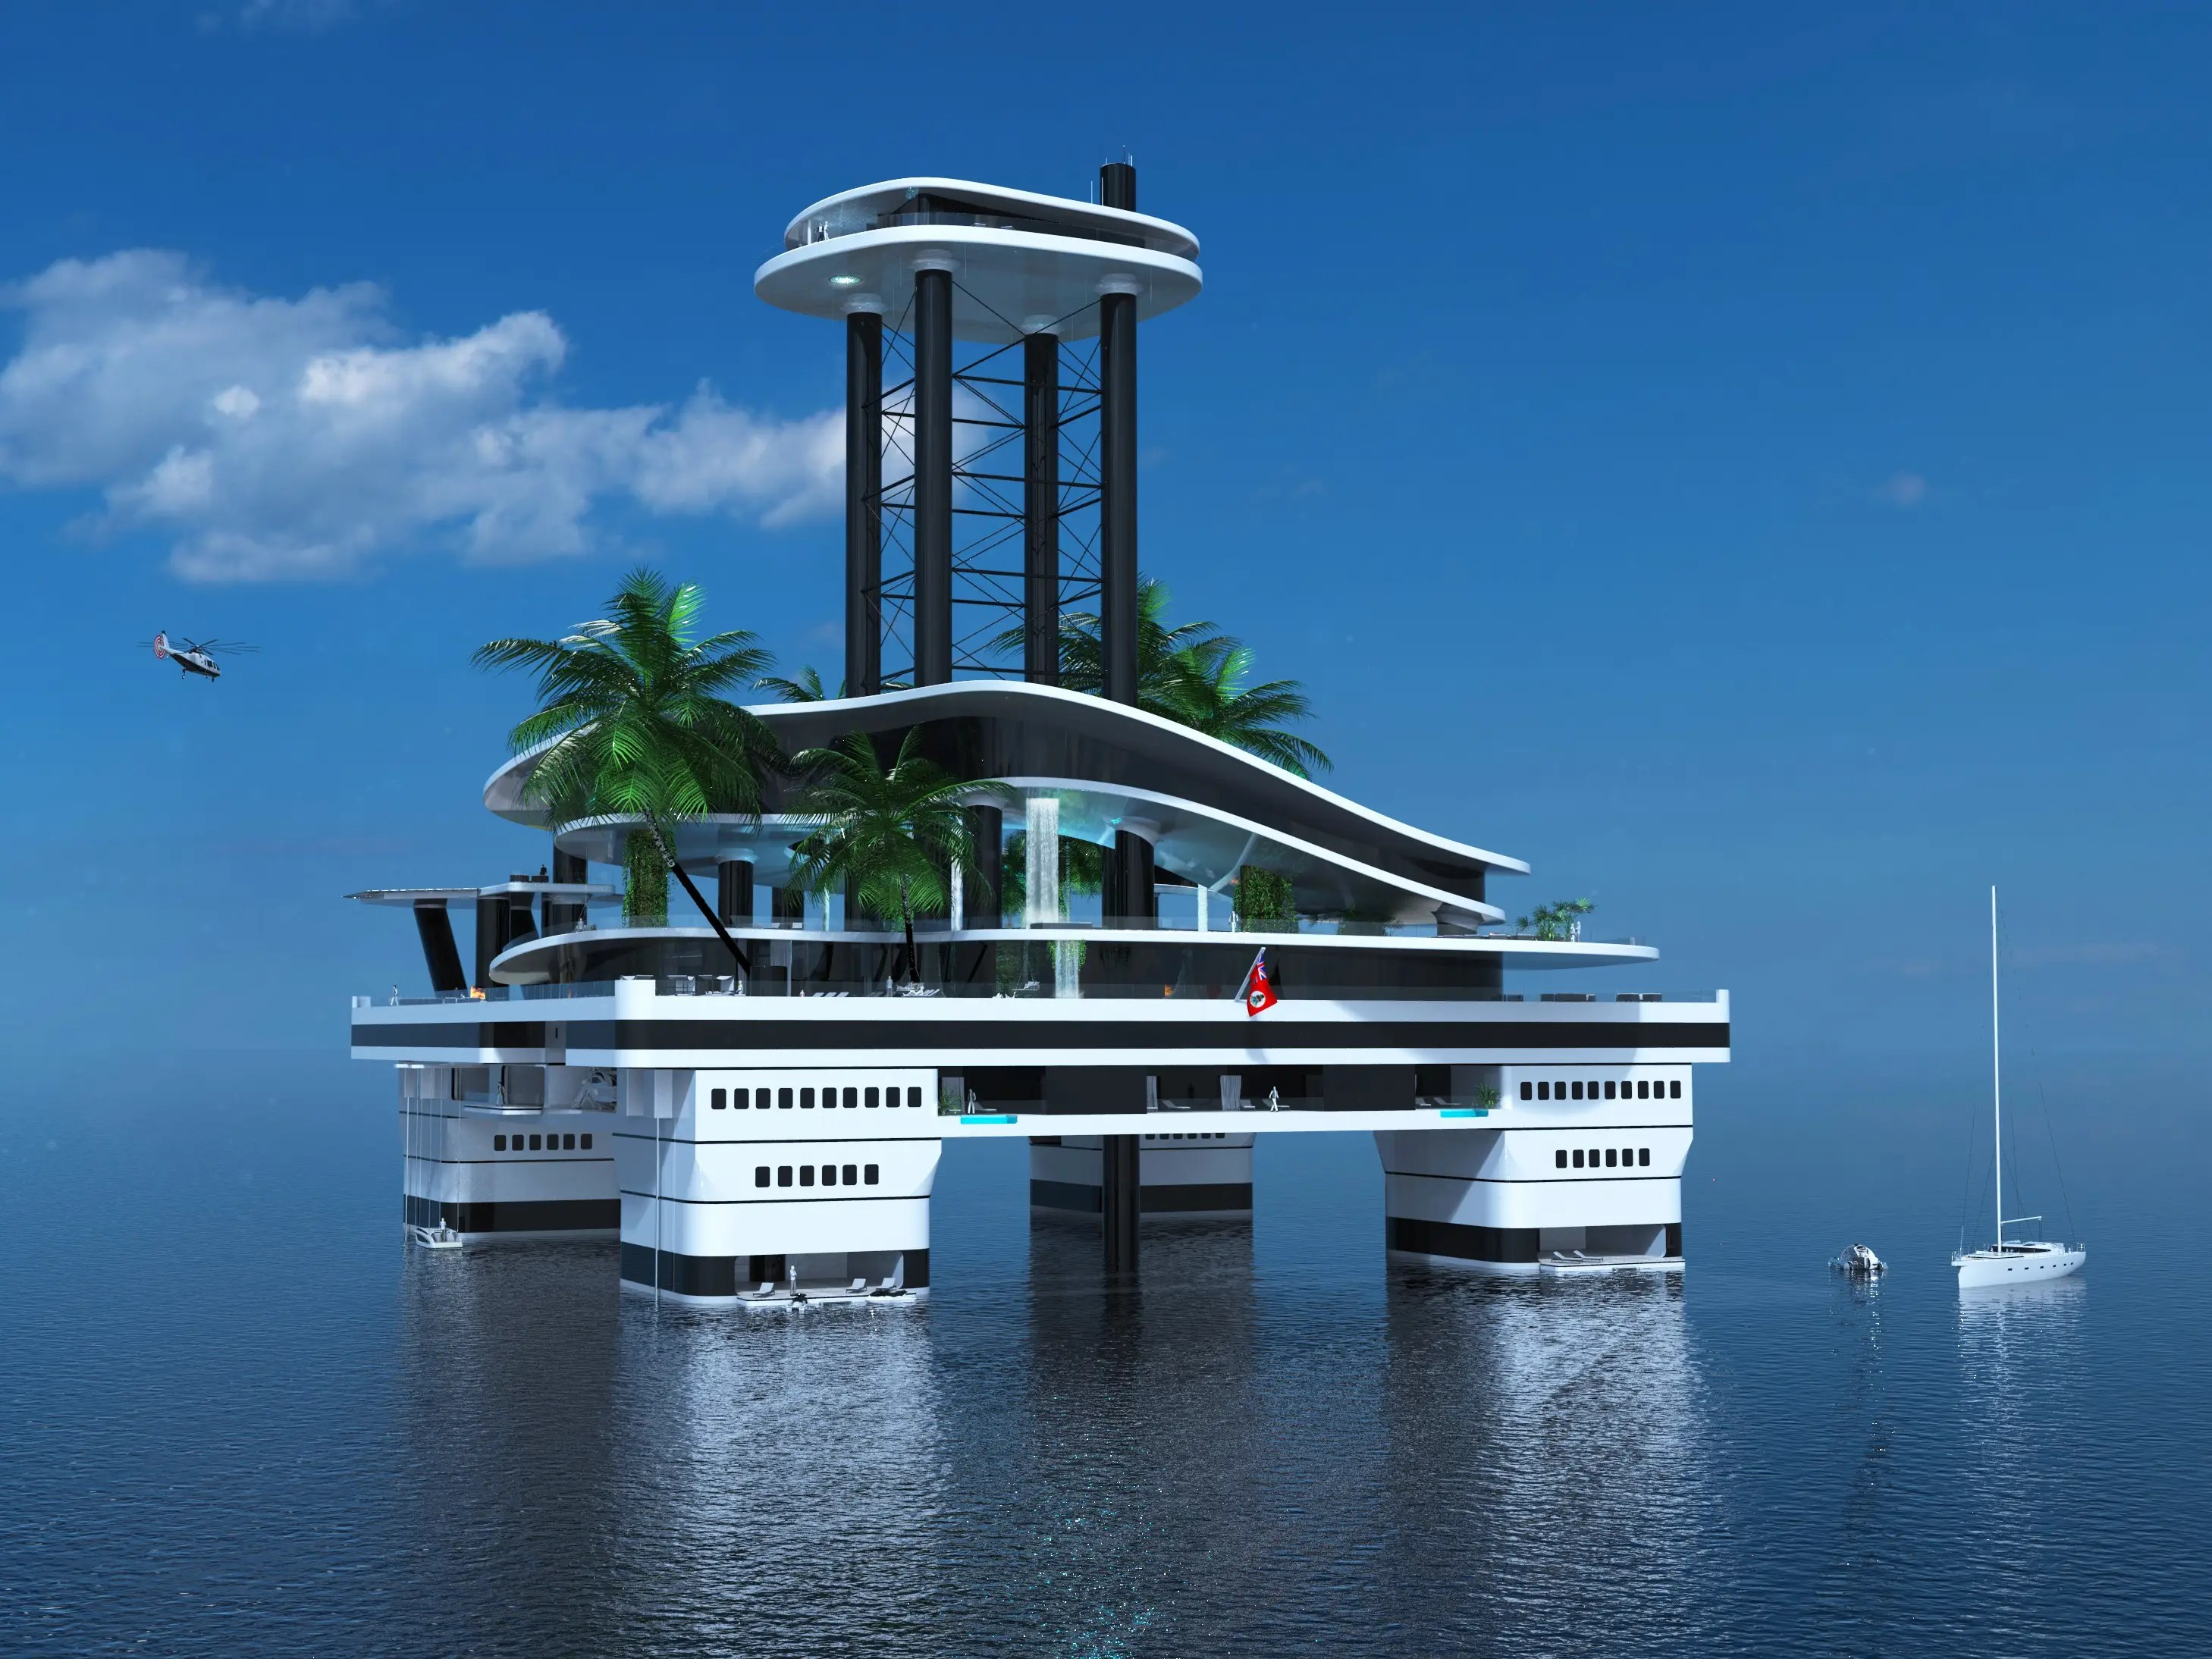 Designed with infinity pools and private balconies, the VIP and guest deck is under the beach deck.